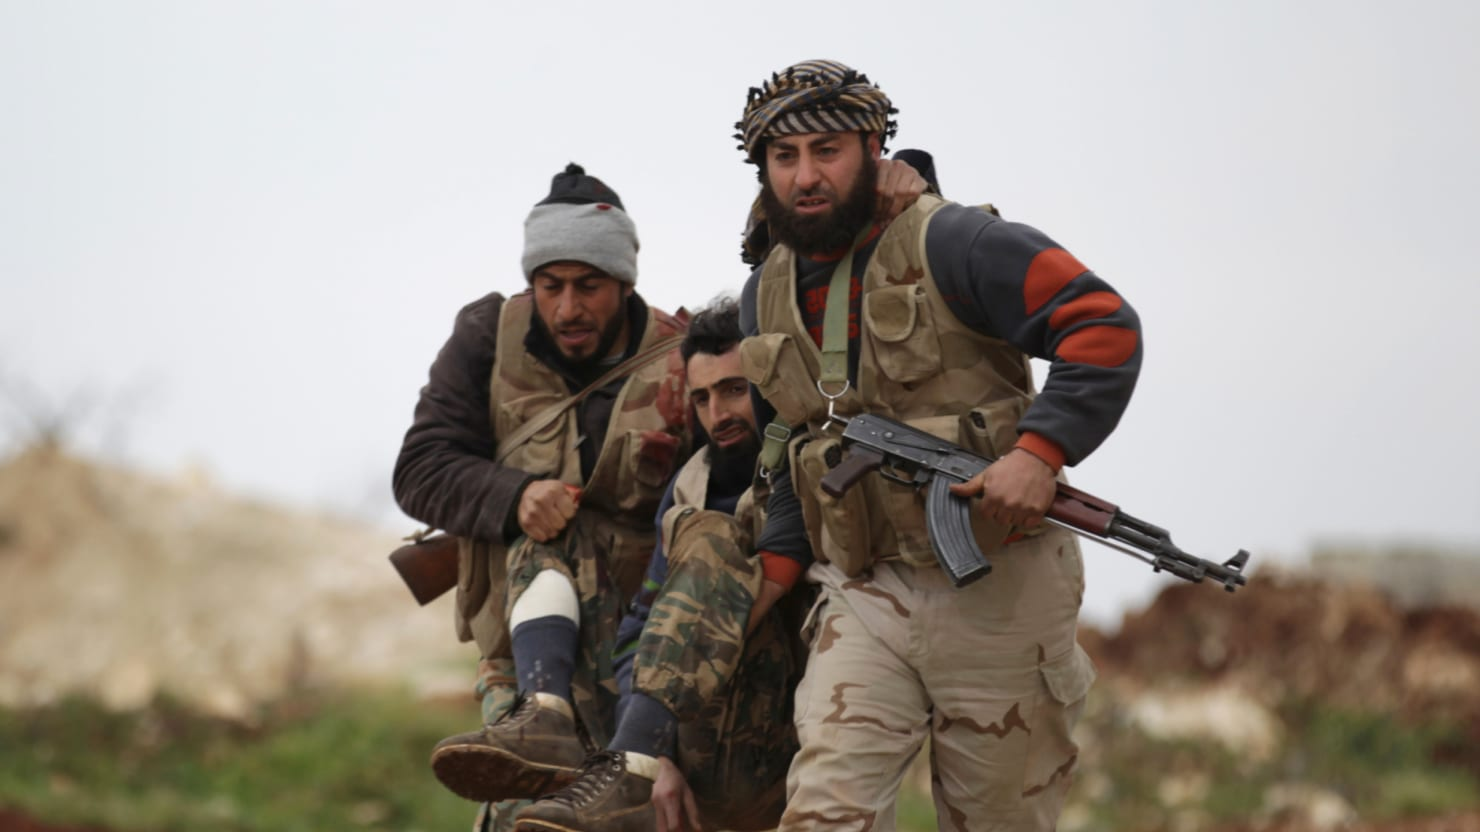 Pentagon Turns Its Anti-ISIS Rebels Into Cannon Fodder